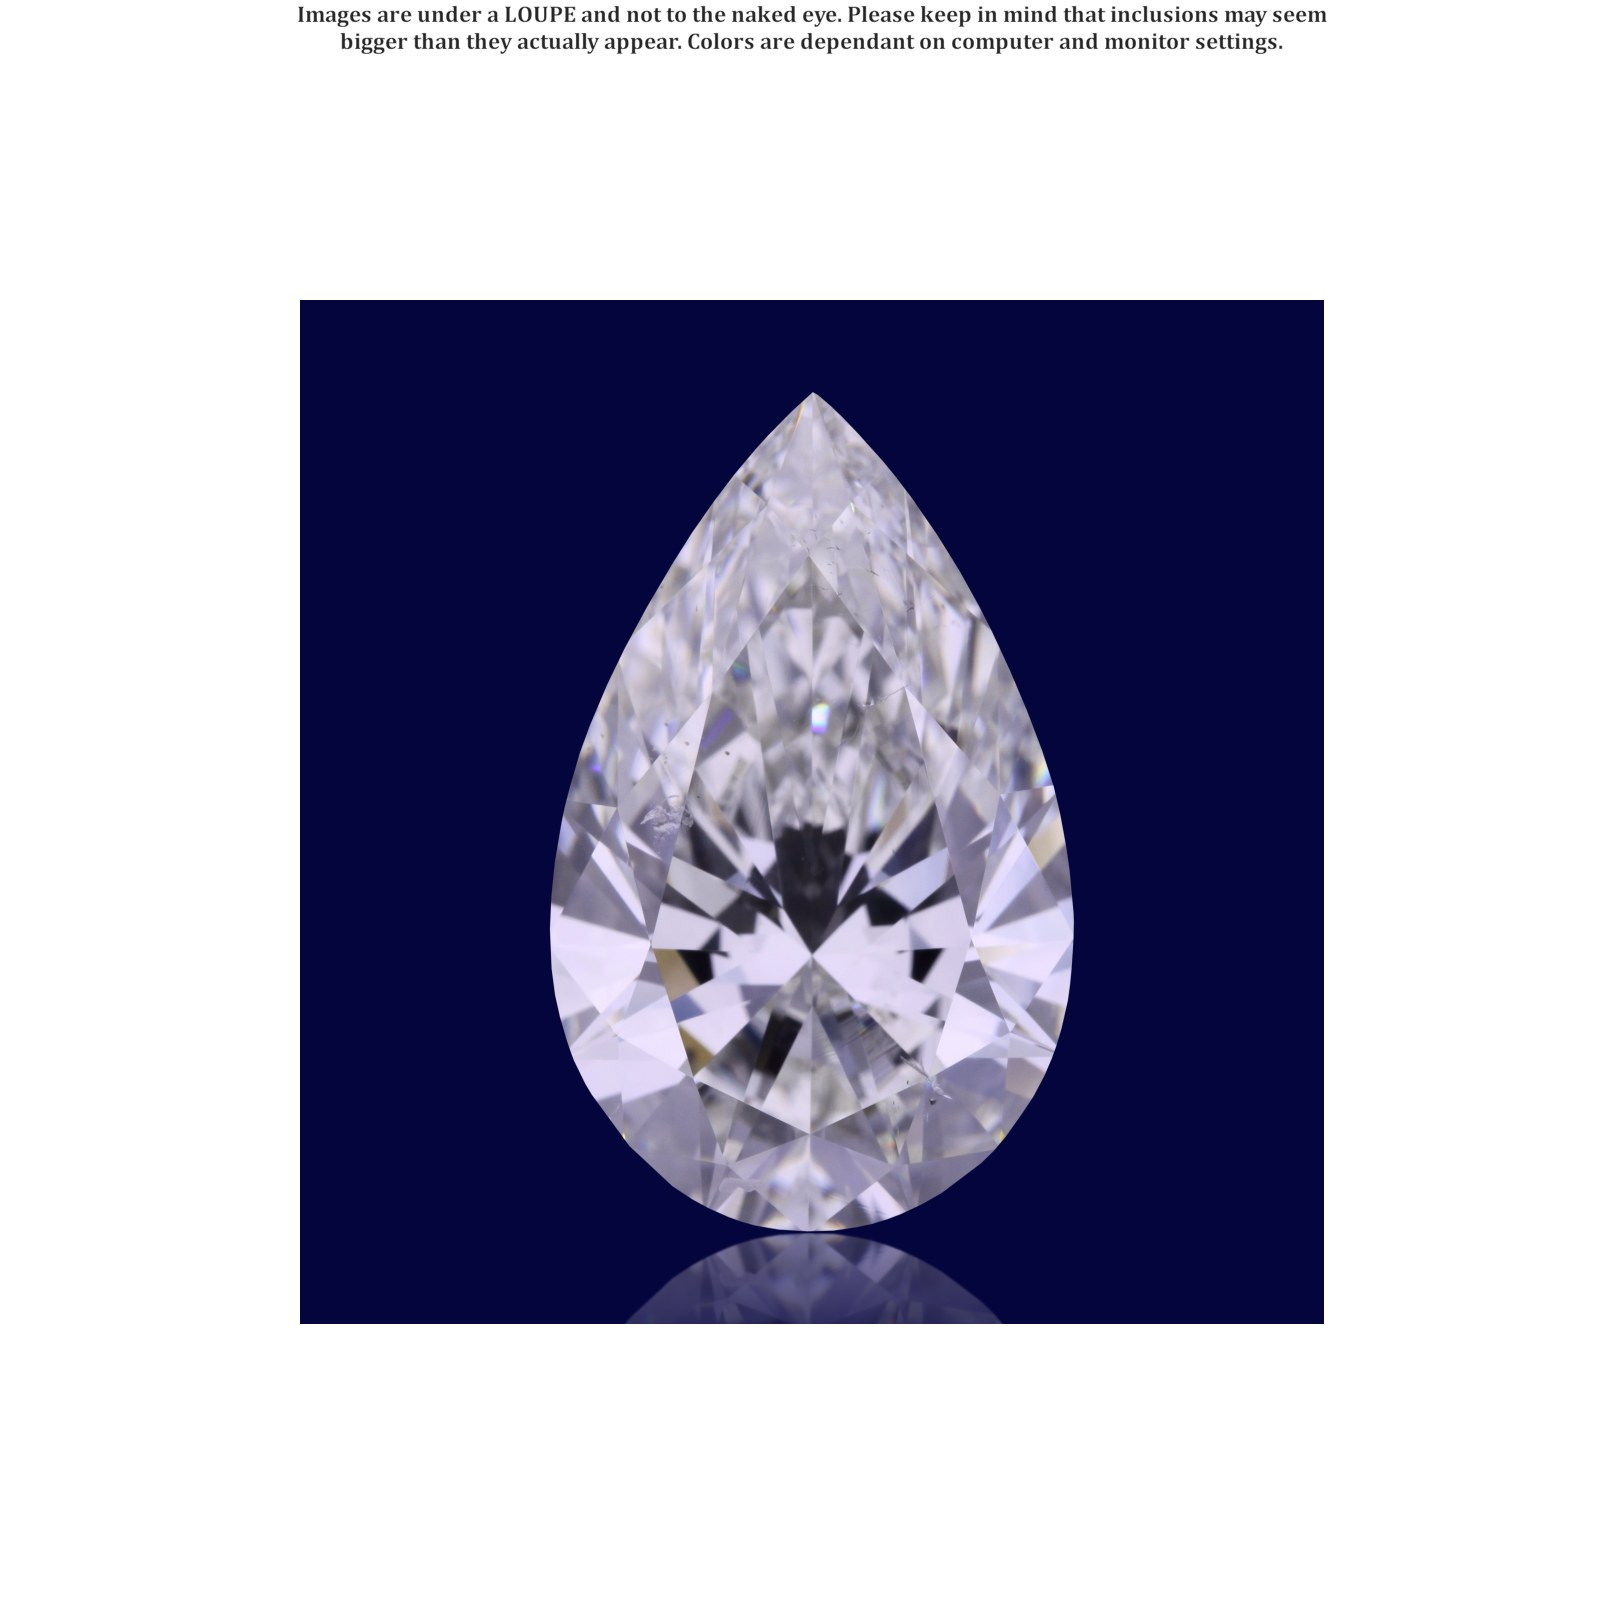 Summerlin Jewelers - Diamond Image - .00651